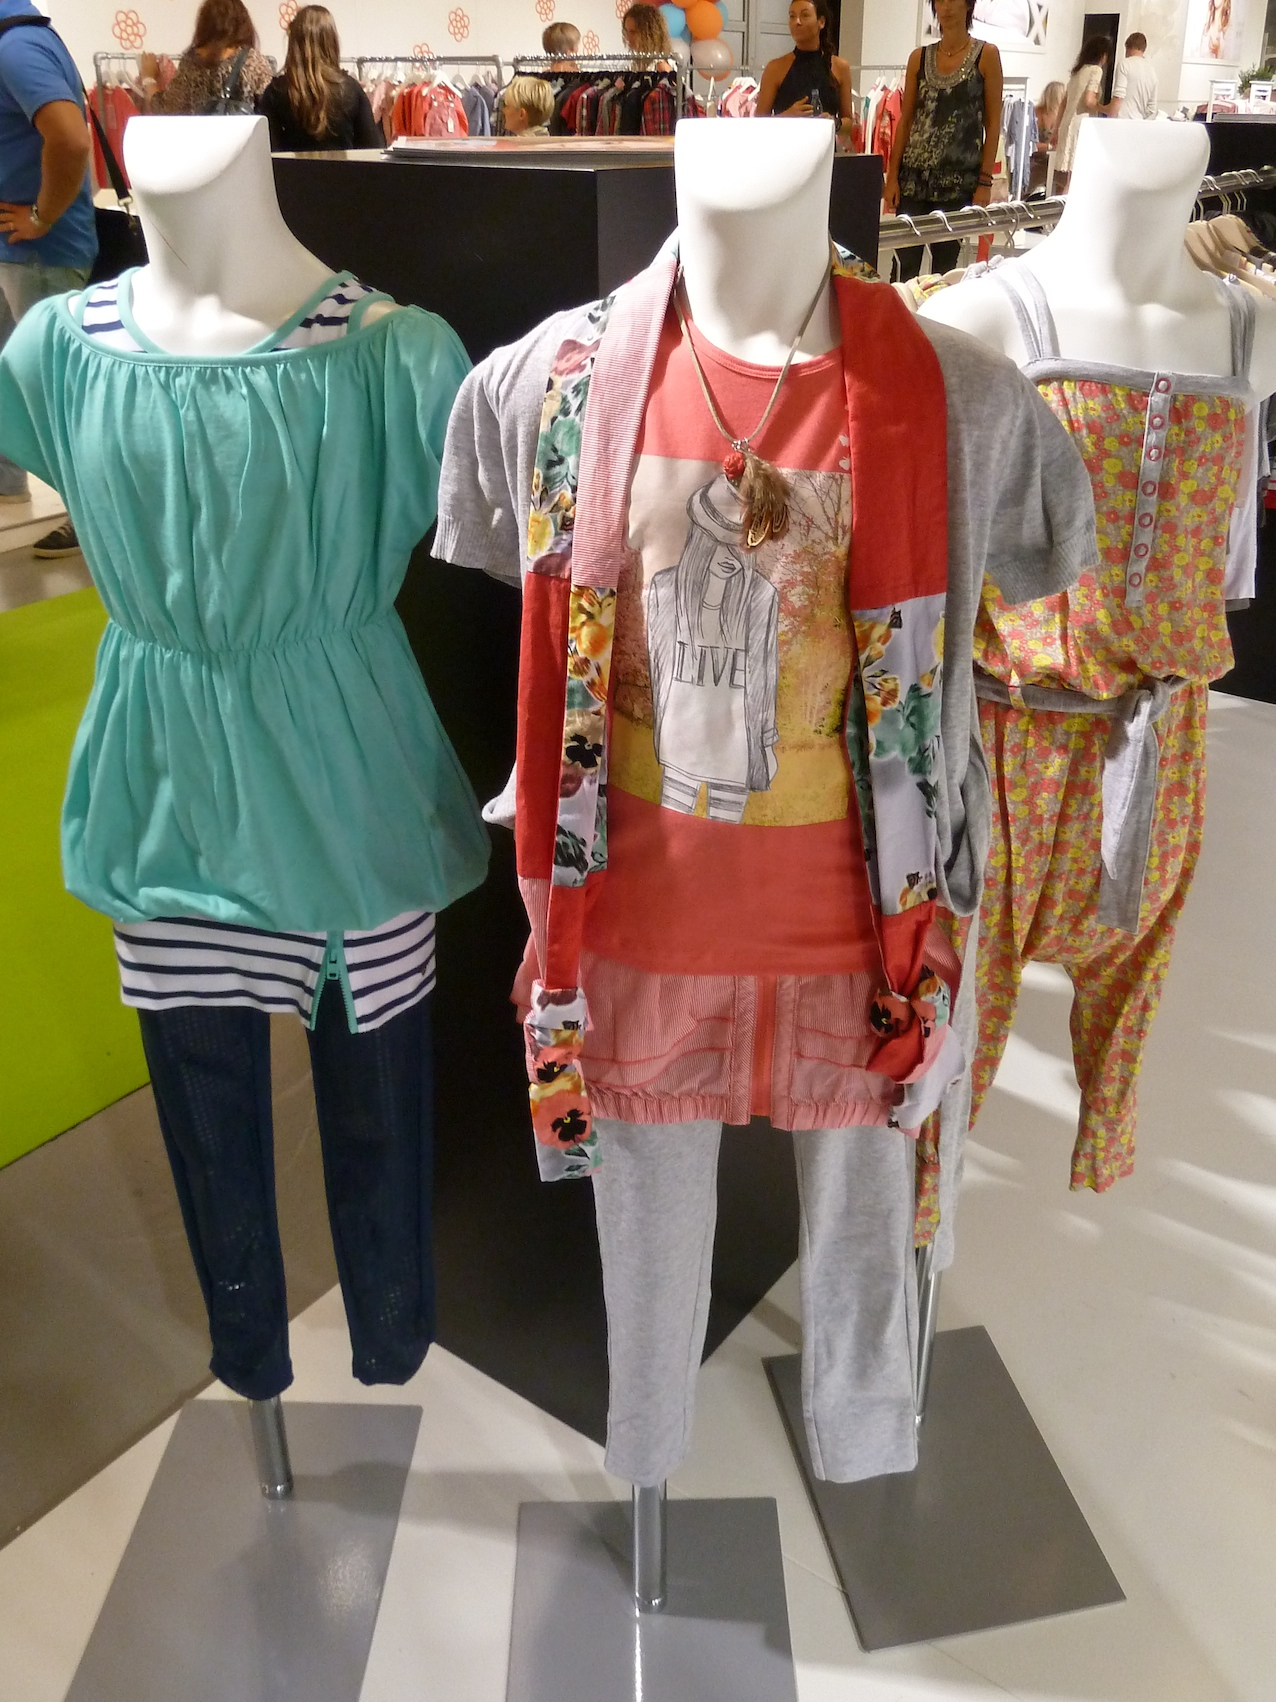 Layered cotton jersey teen styling from NoNo at Ciff Kids for summer 2012